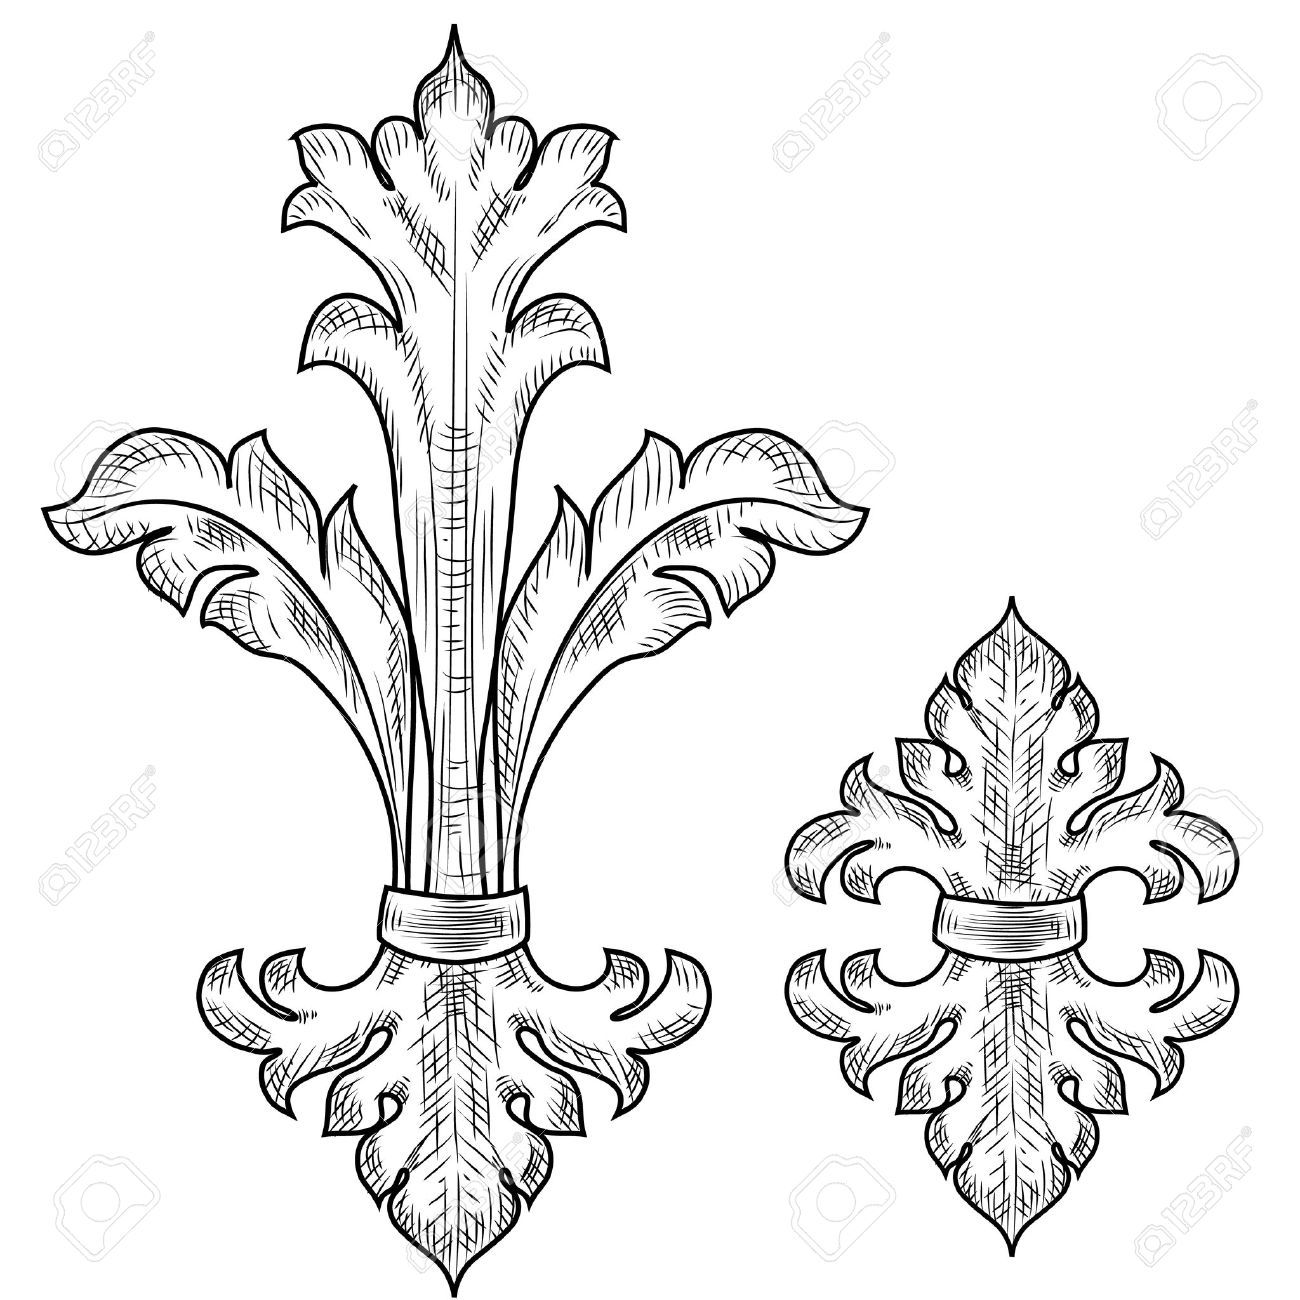 17009655 baroque design elements stock vector baroque for Baroque architecture elements